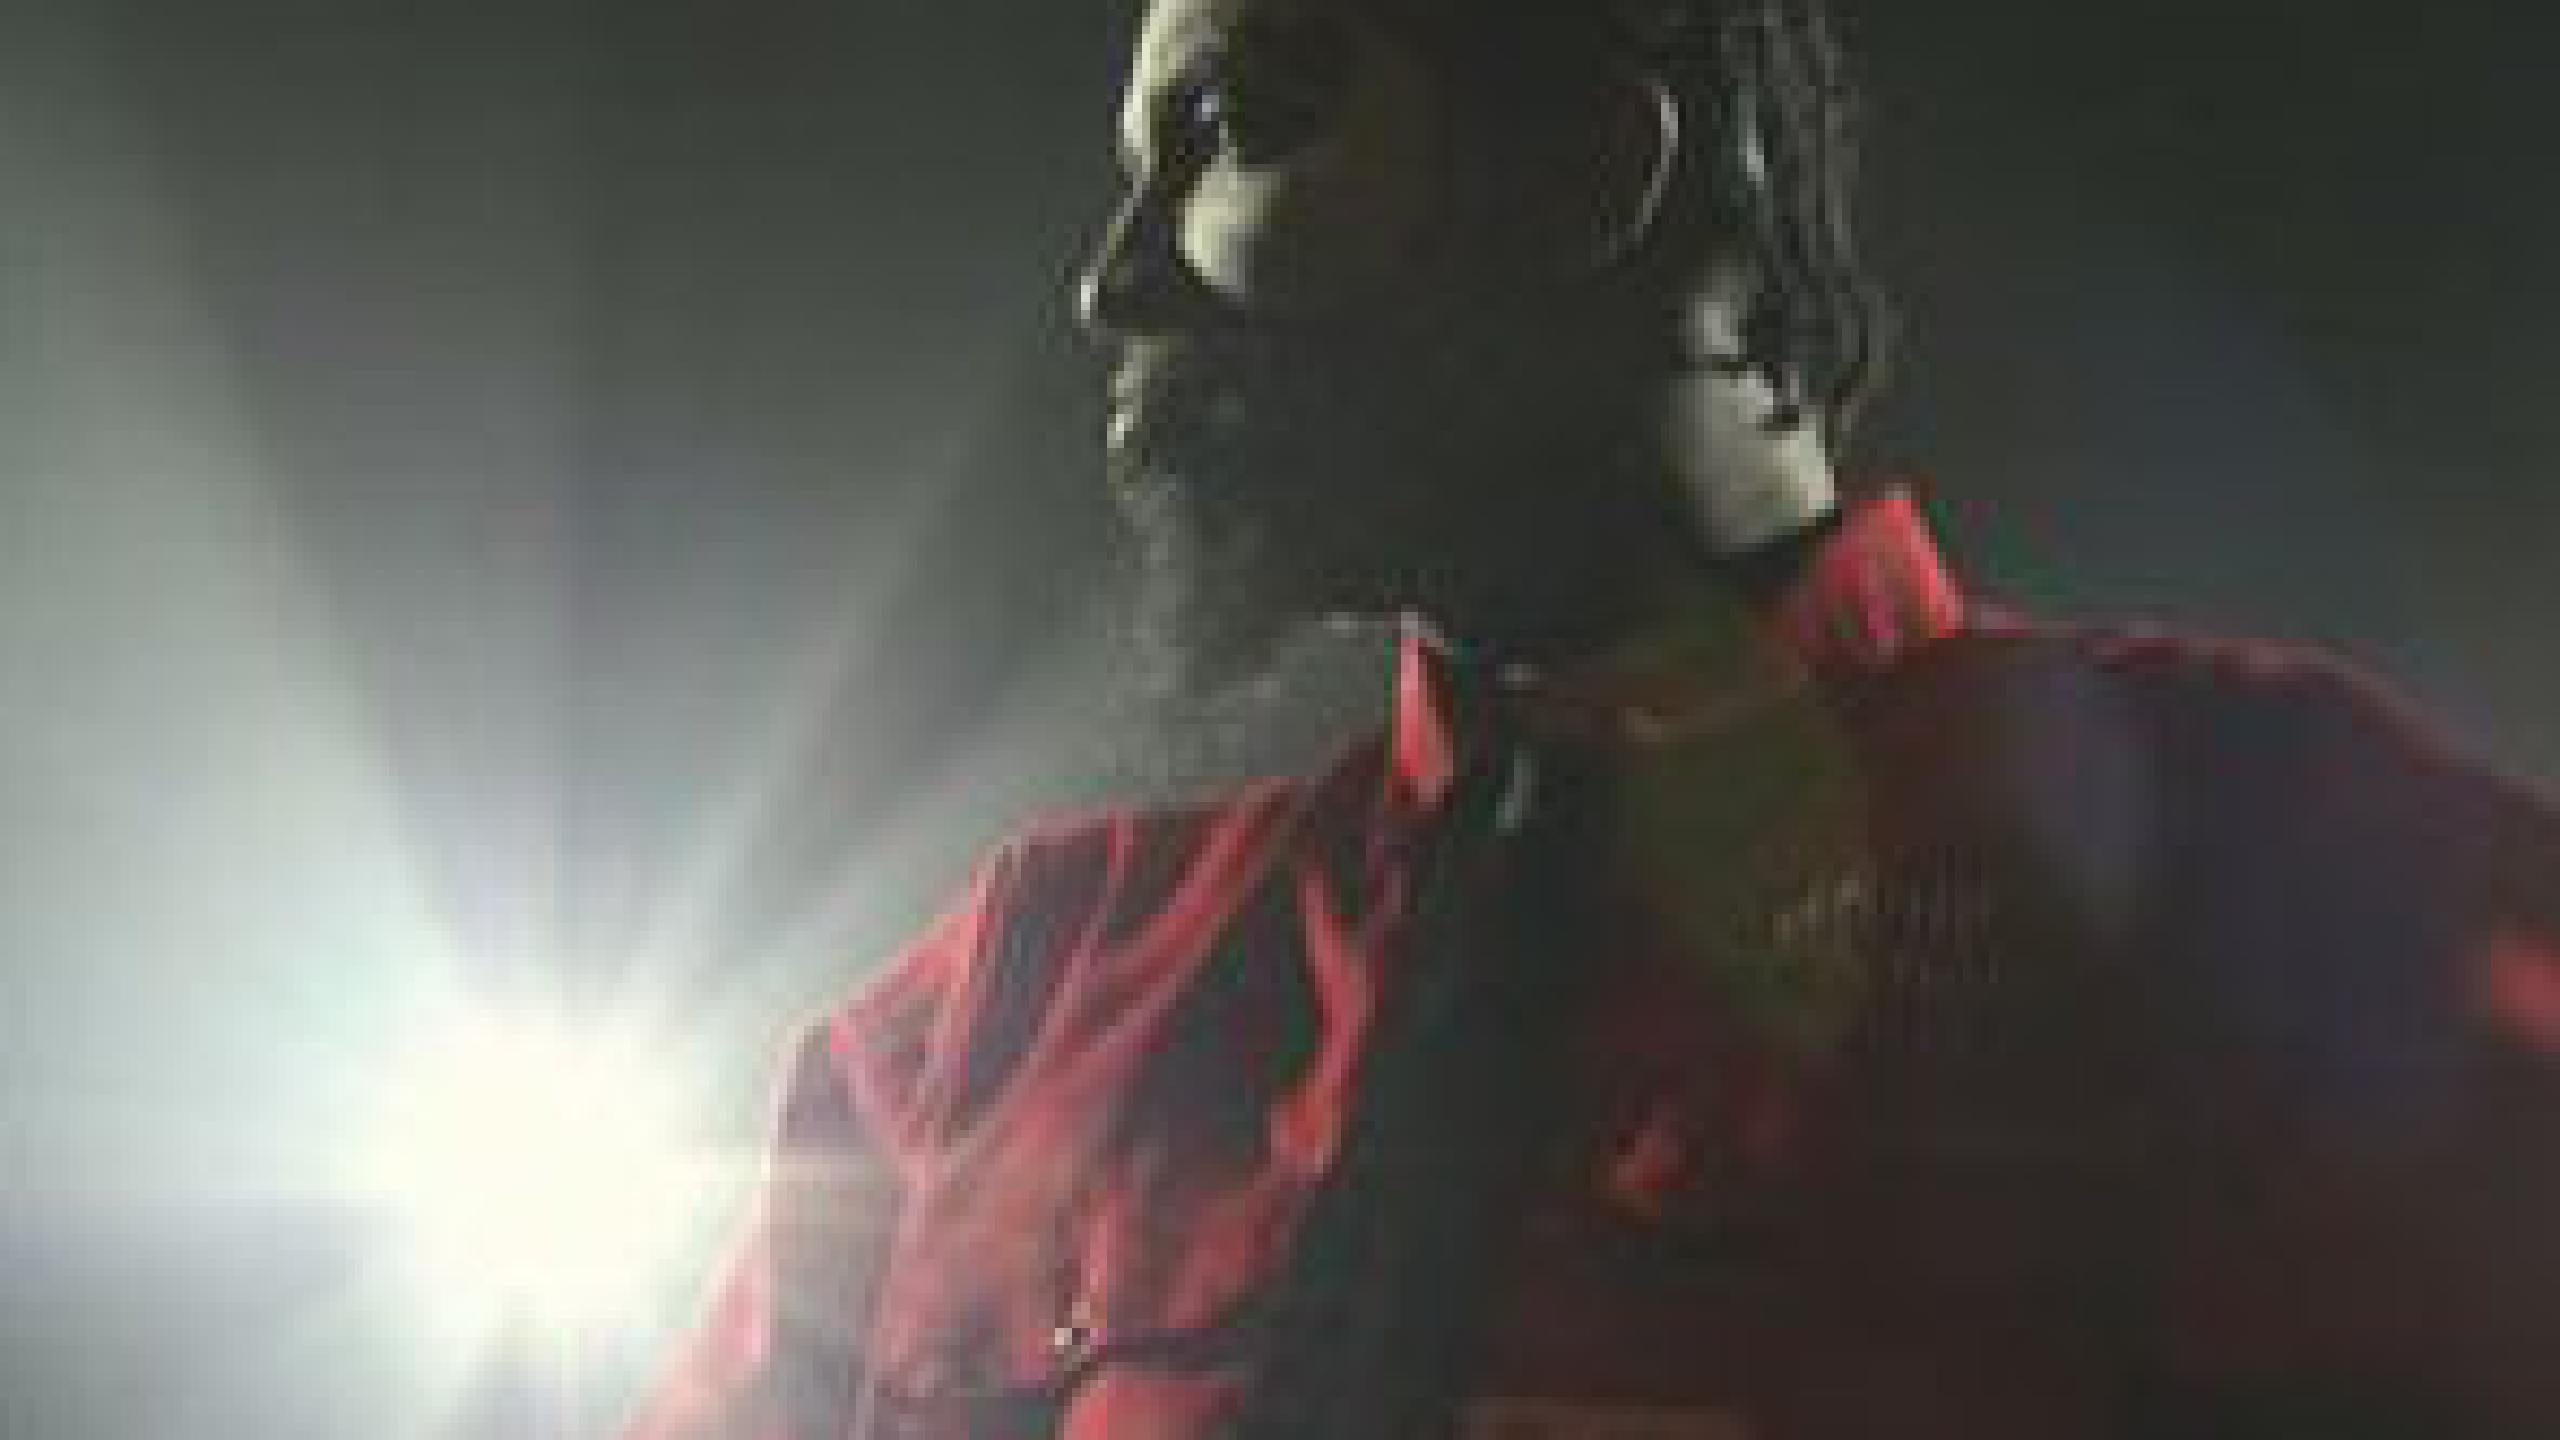 Tech N9ne Tour 2020.Tech N9ne Tour Dates 2019 2020 Tech N9ne Tickets And Concerts Wegow